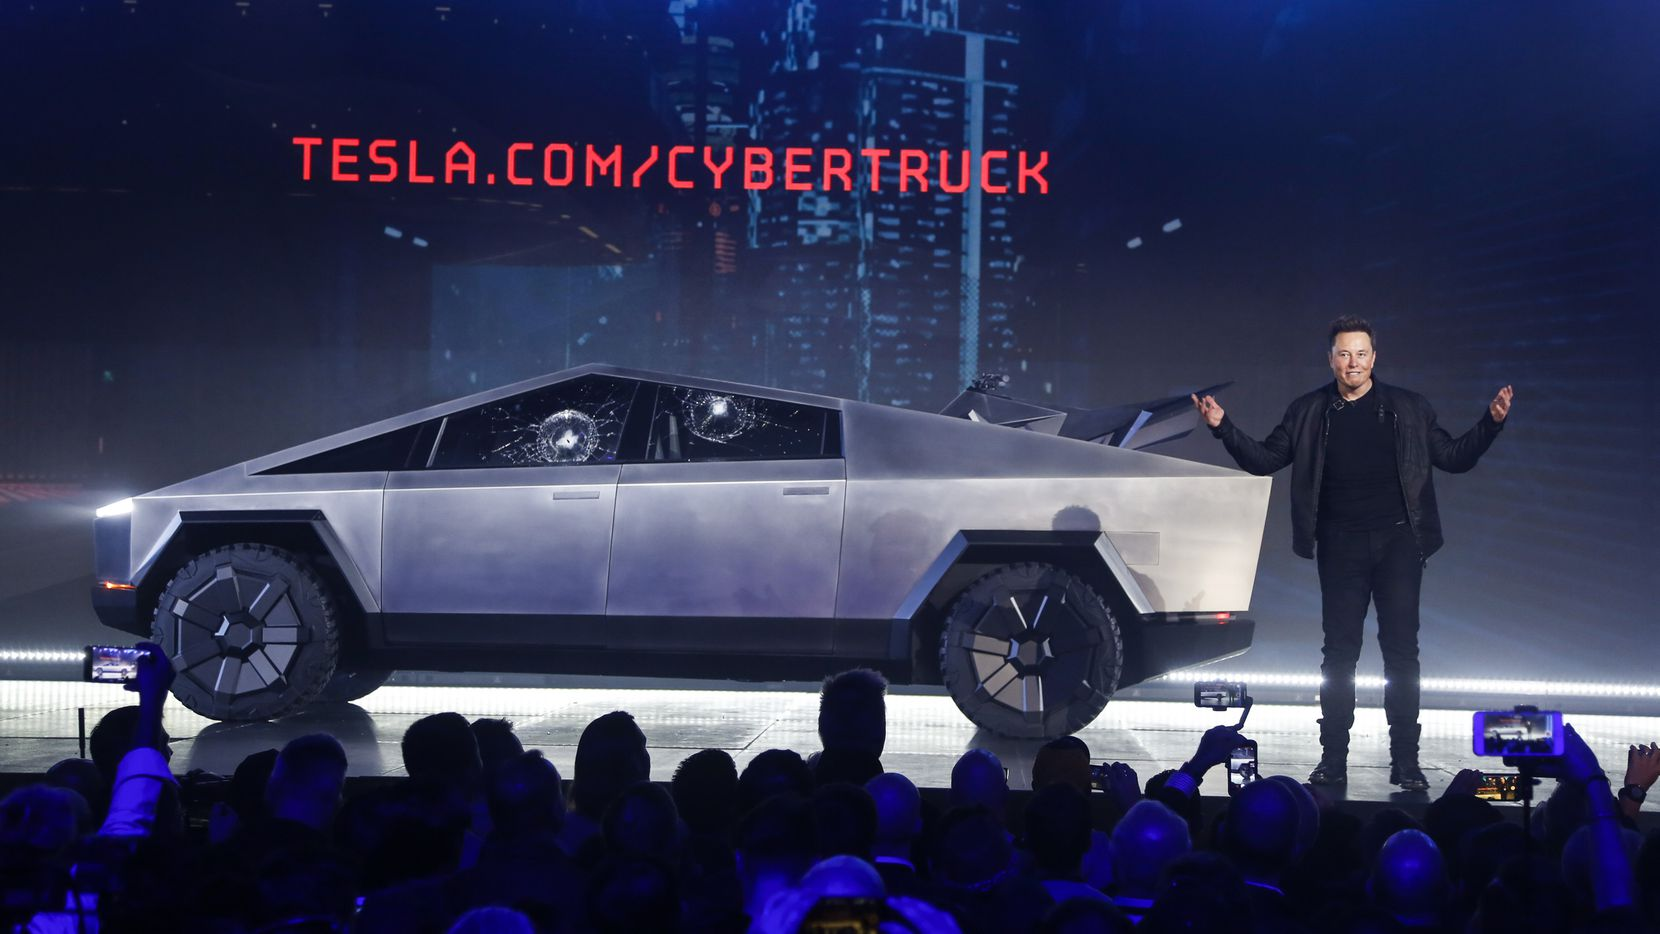 Tesla CEO Elon Musk introduced the Cybertruck at Tesla's design studio in 2019 in Hawthorne, Calif.